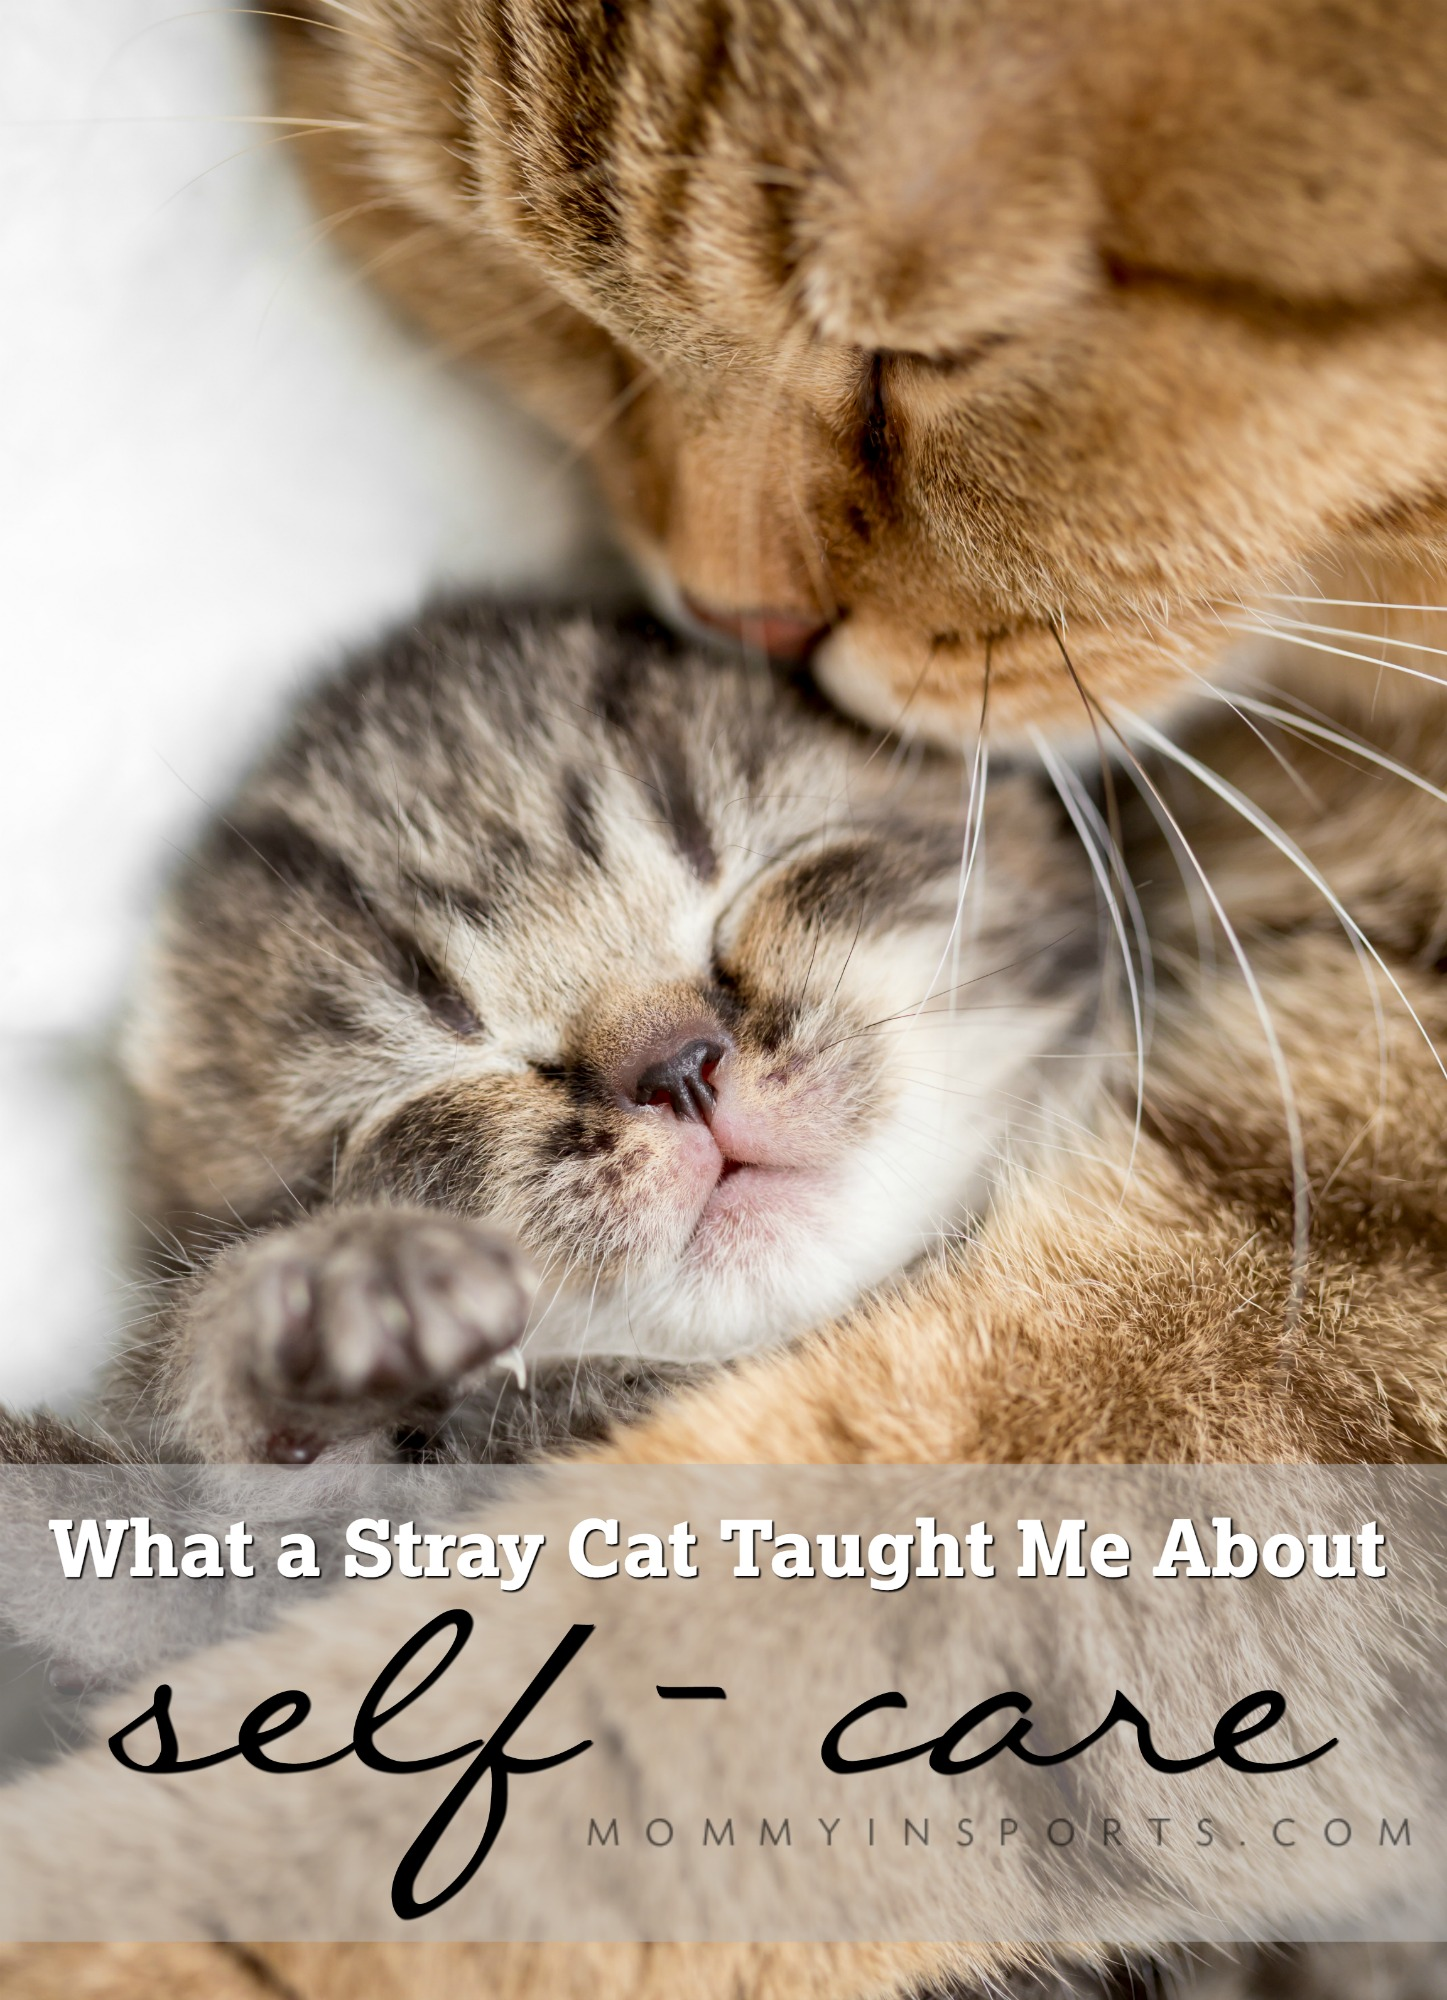 Feeling overwhelmed from motherhood. There are ways to make space in your life for YOU. Read how a stray cat helped me find time for myself, and ways YOU can too!